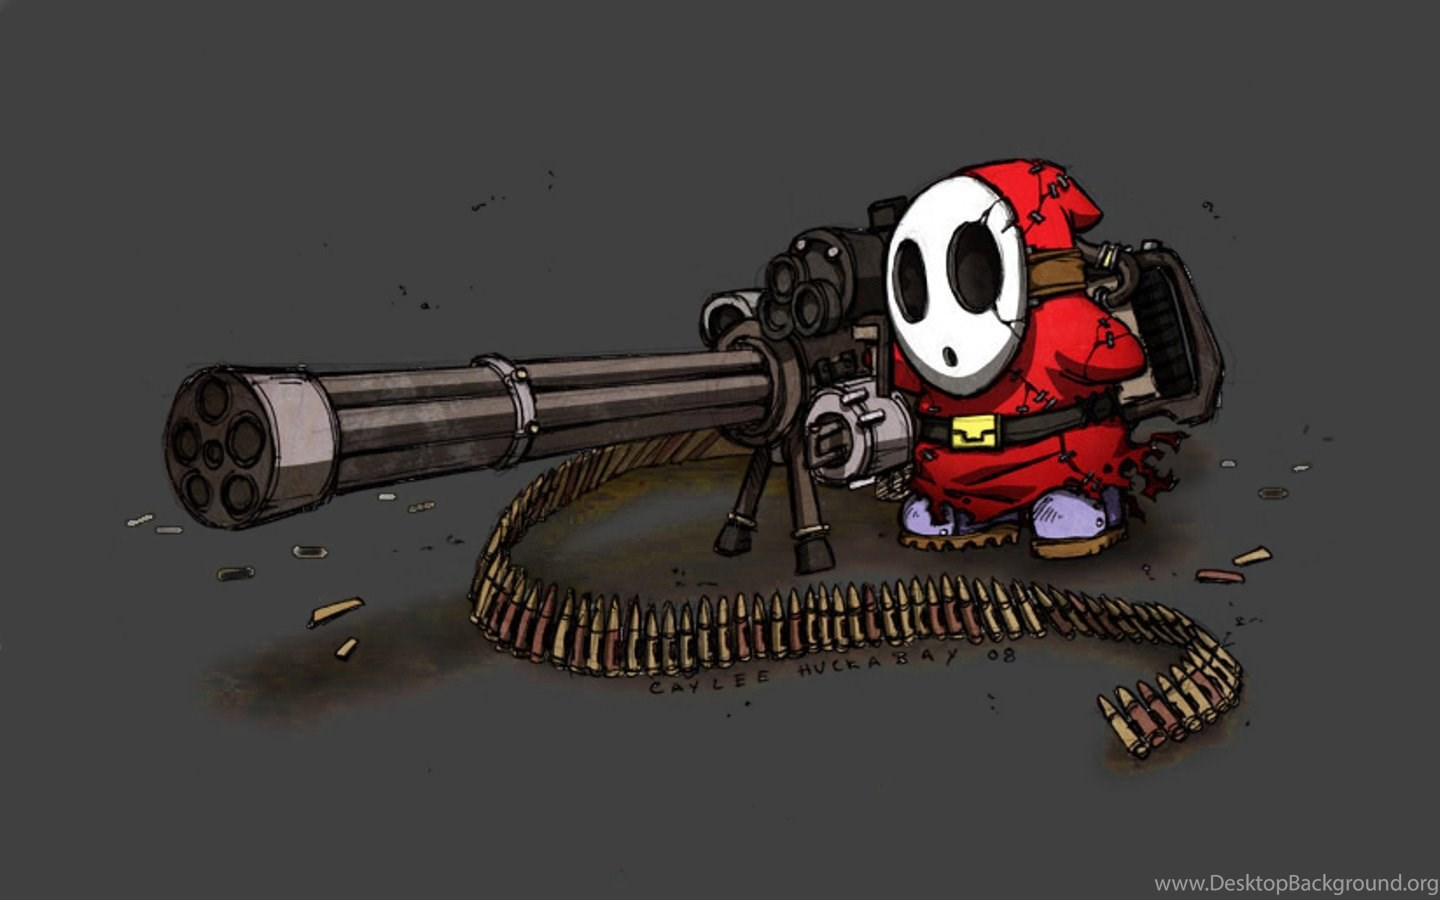 Download The Overkill Gatling Gun Wallpaper, Overkill